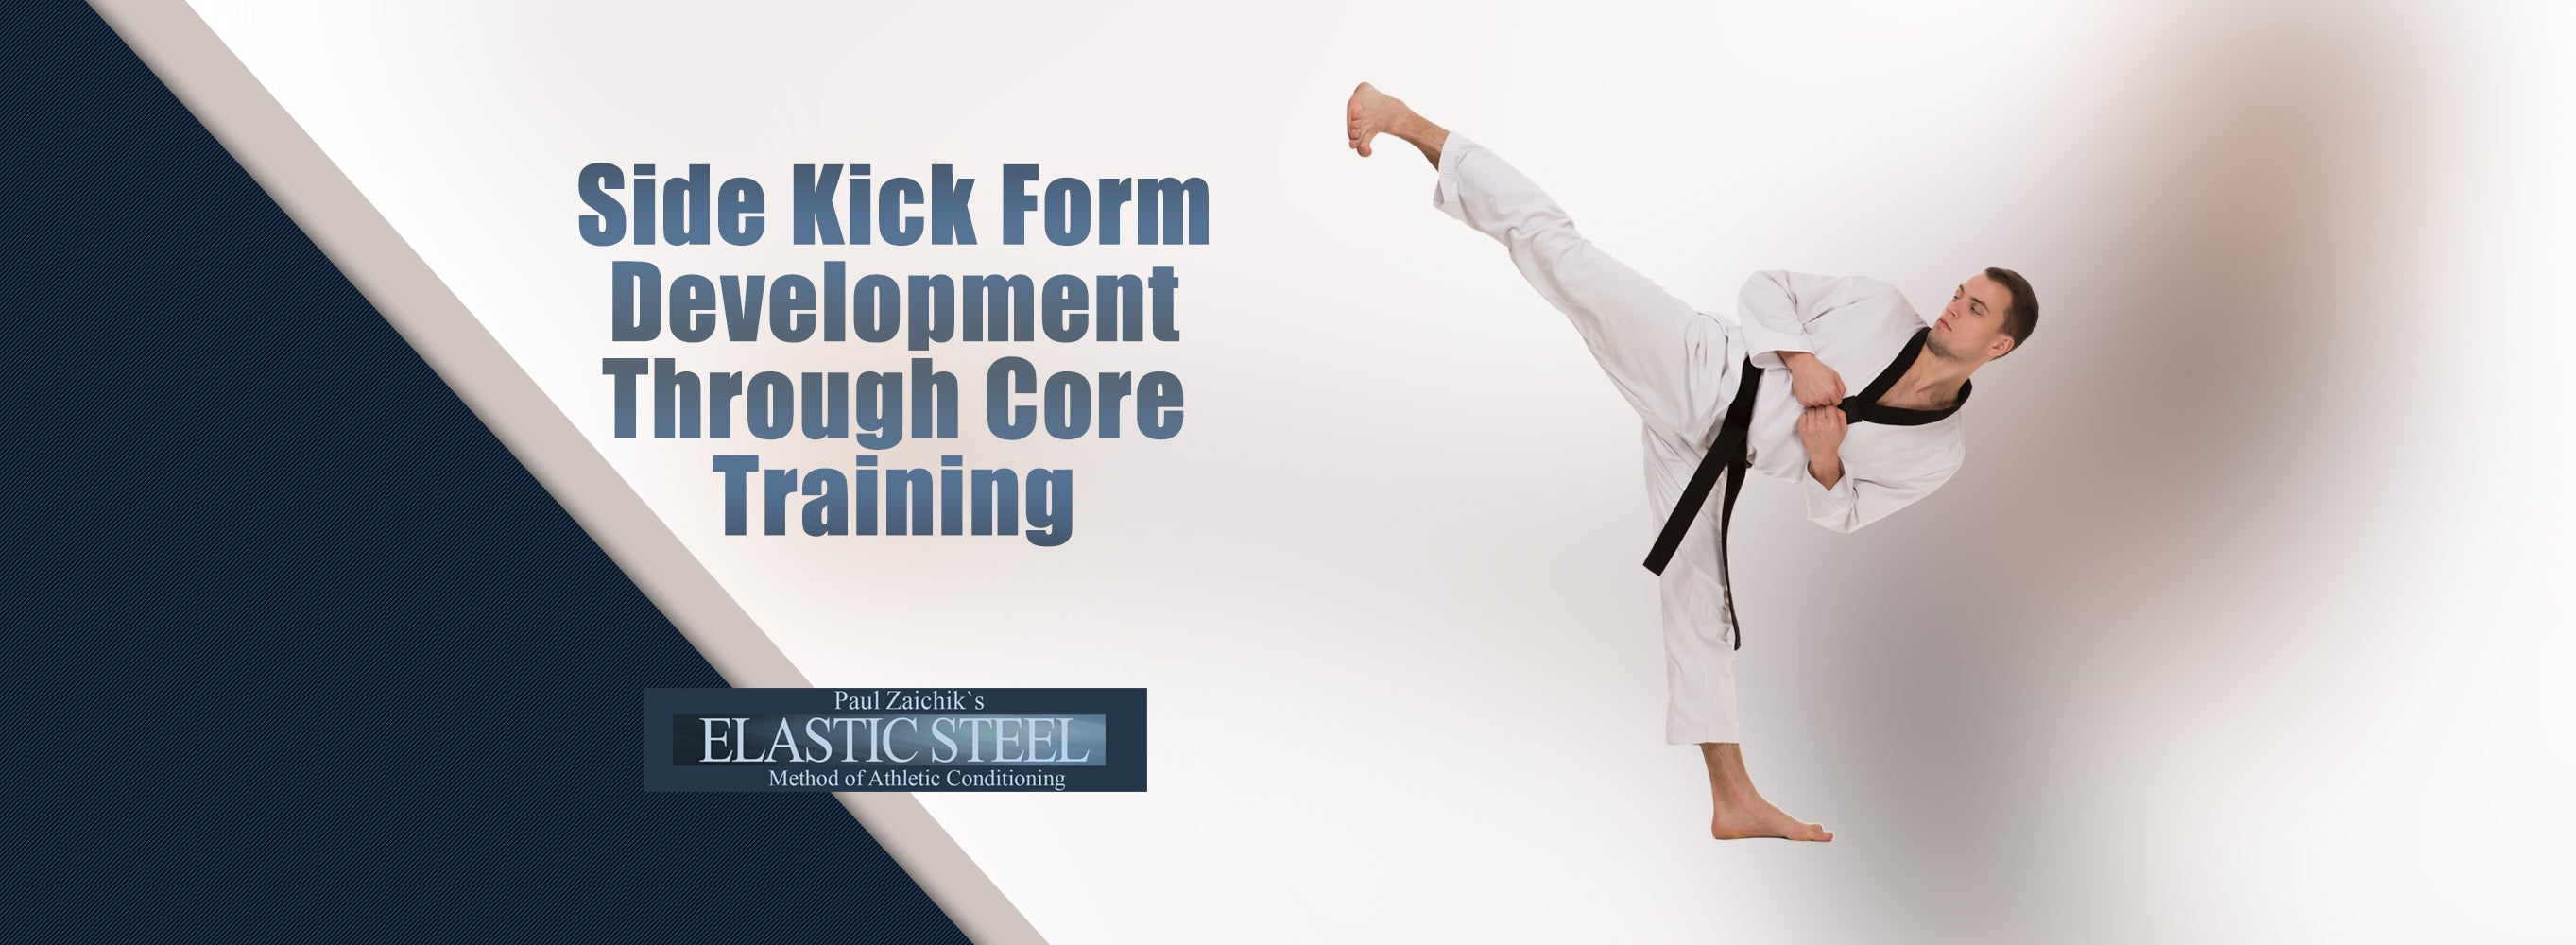 Side Kick Form Development Through Core Training